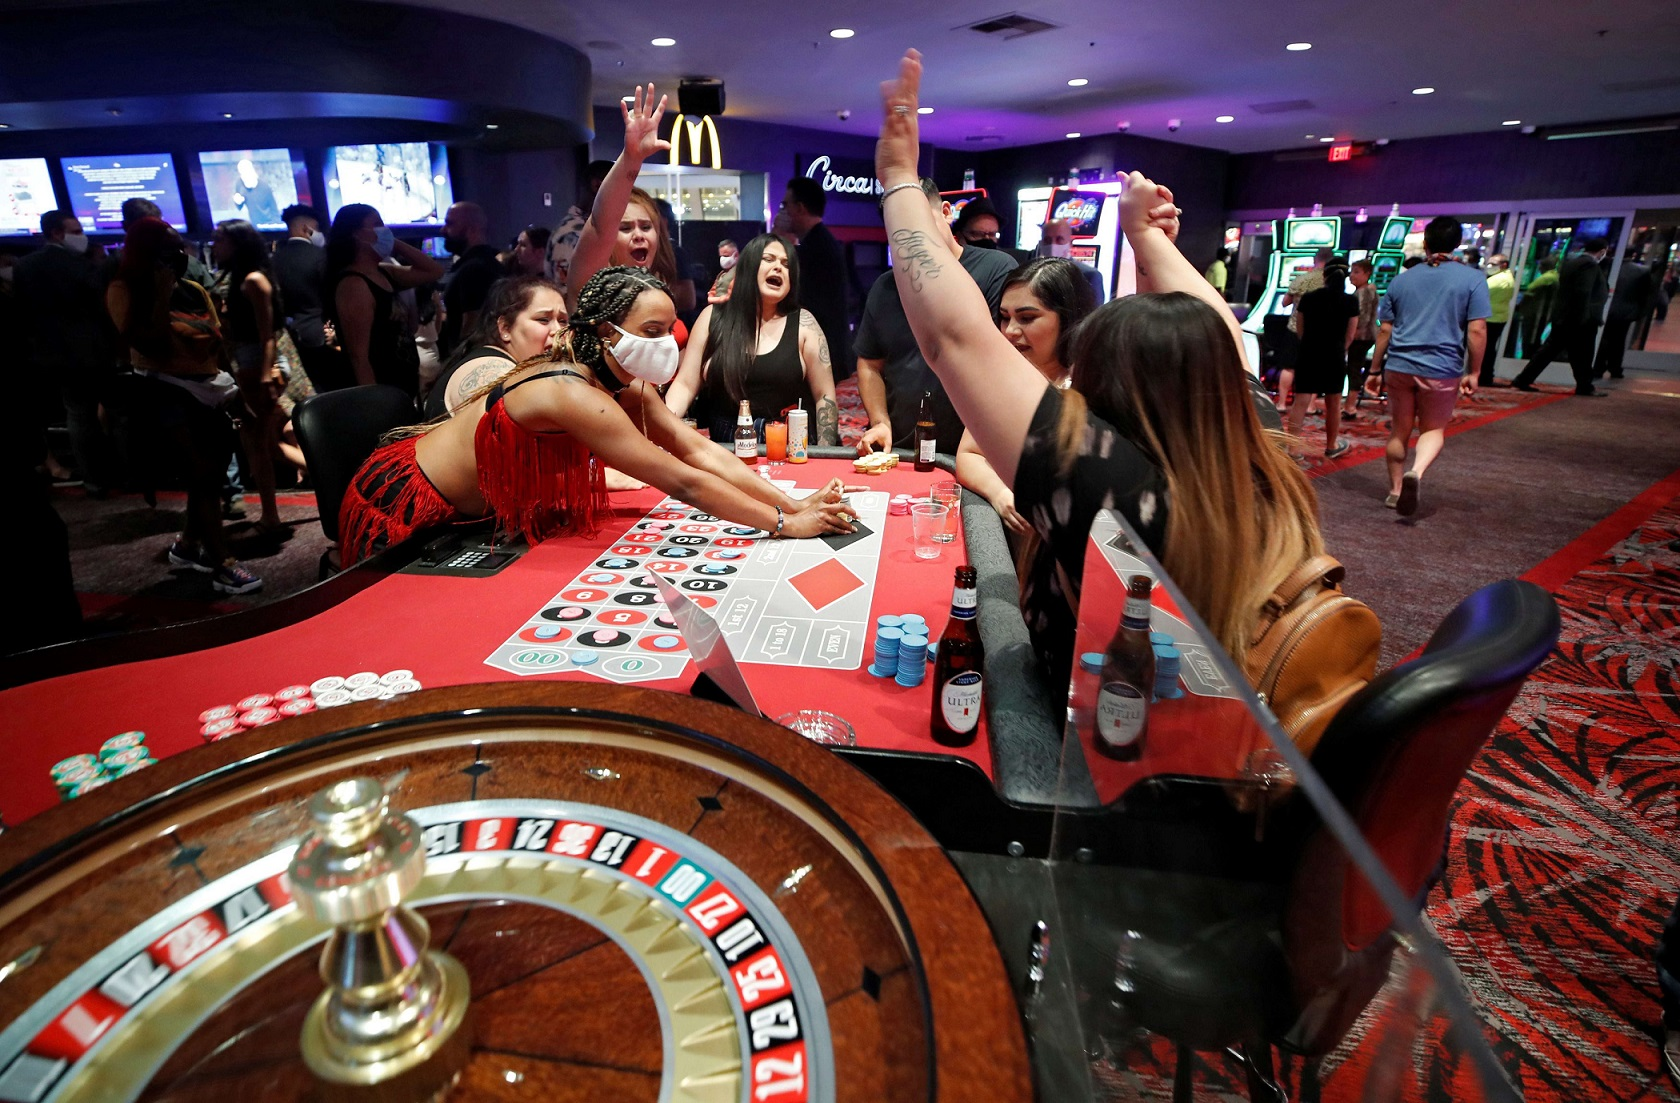 Guidelines About Gambling Meant To Be Damaged